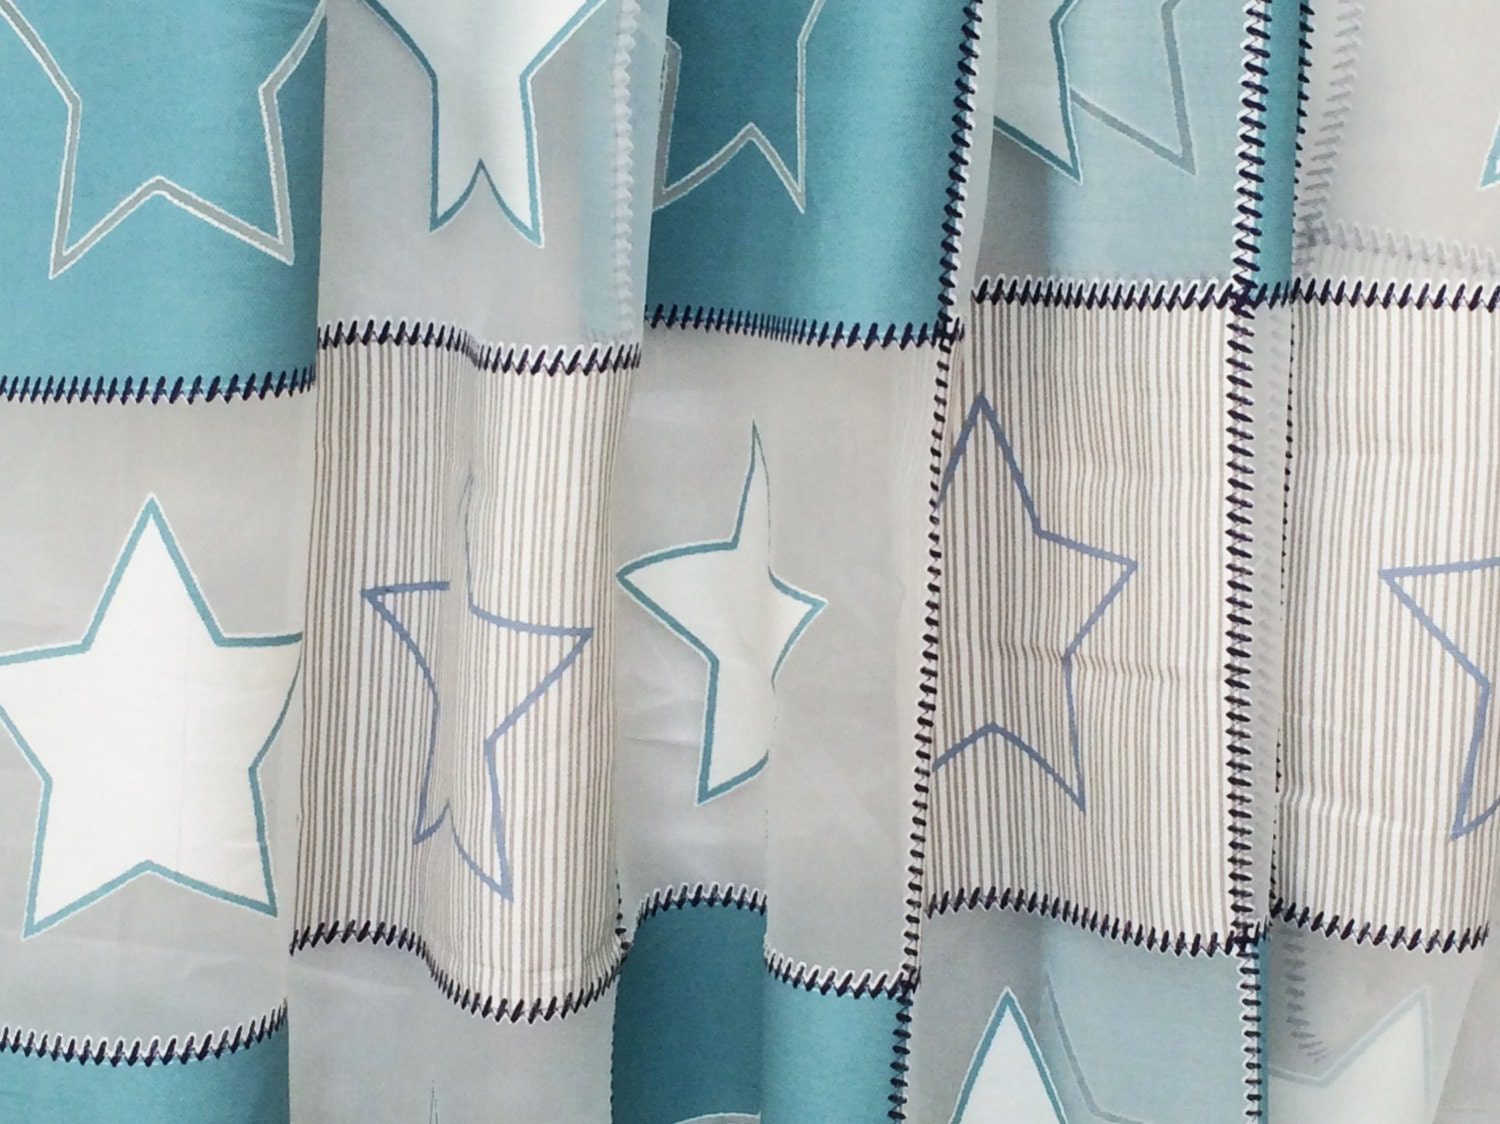 Blue twinkling stars sheer curtain fabric by the yard for Kids drapery fabric